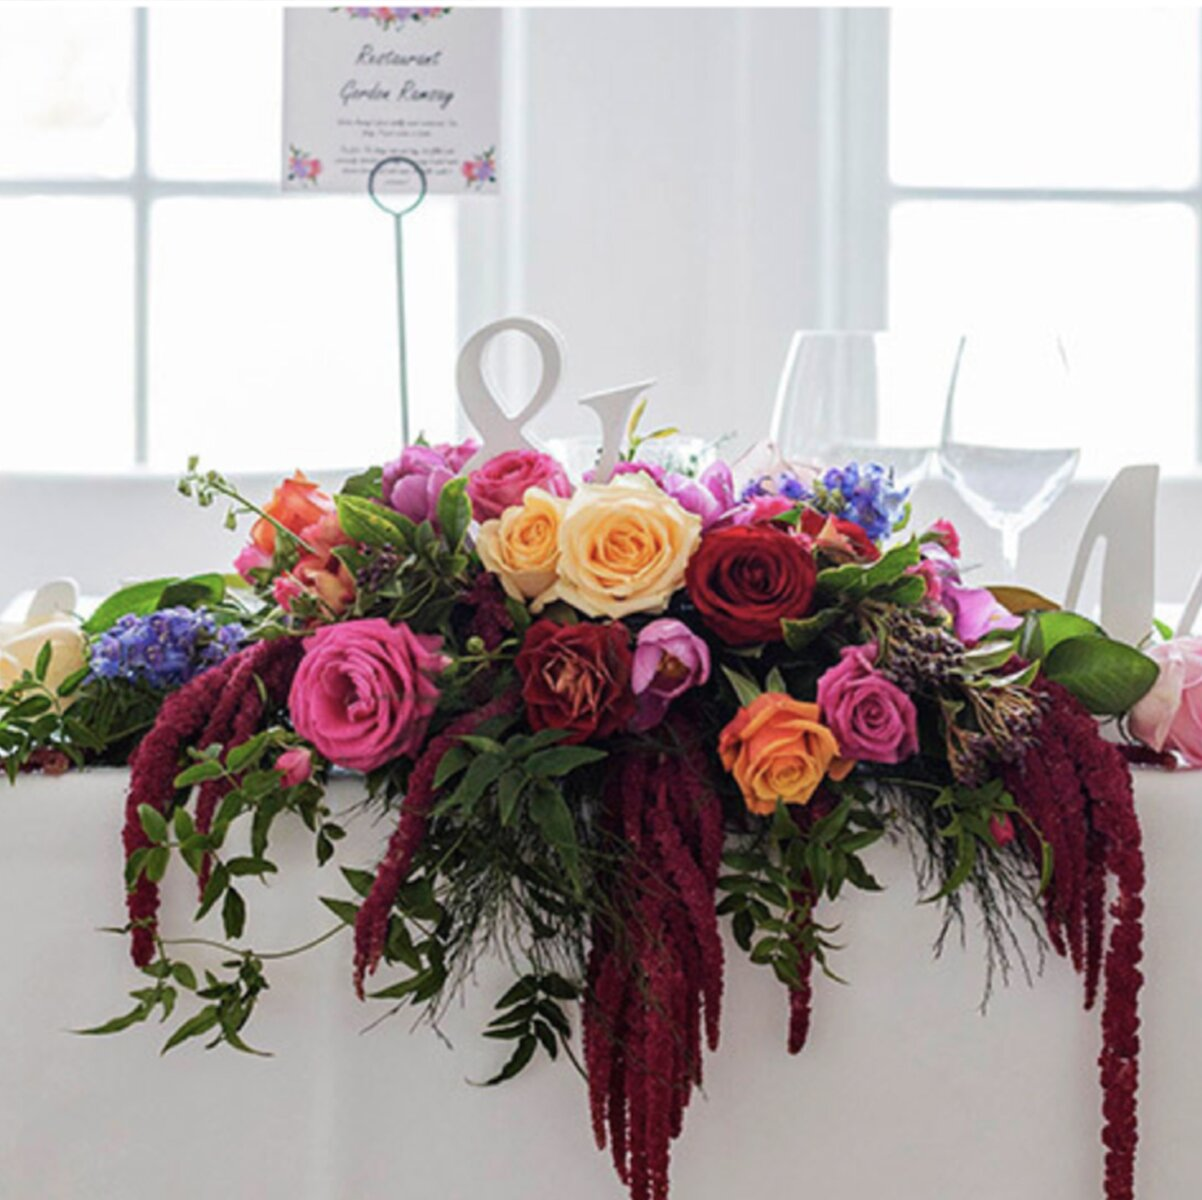 flowers-bridal-table-sydney-price